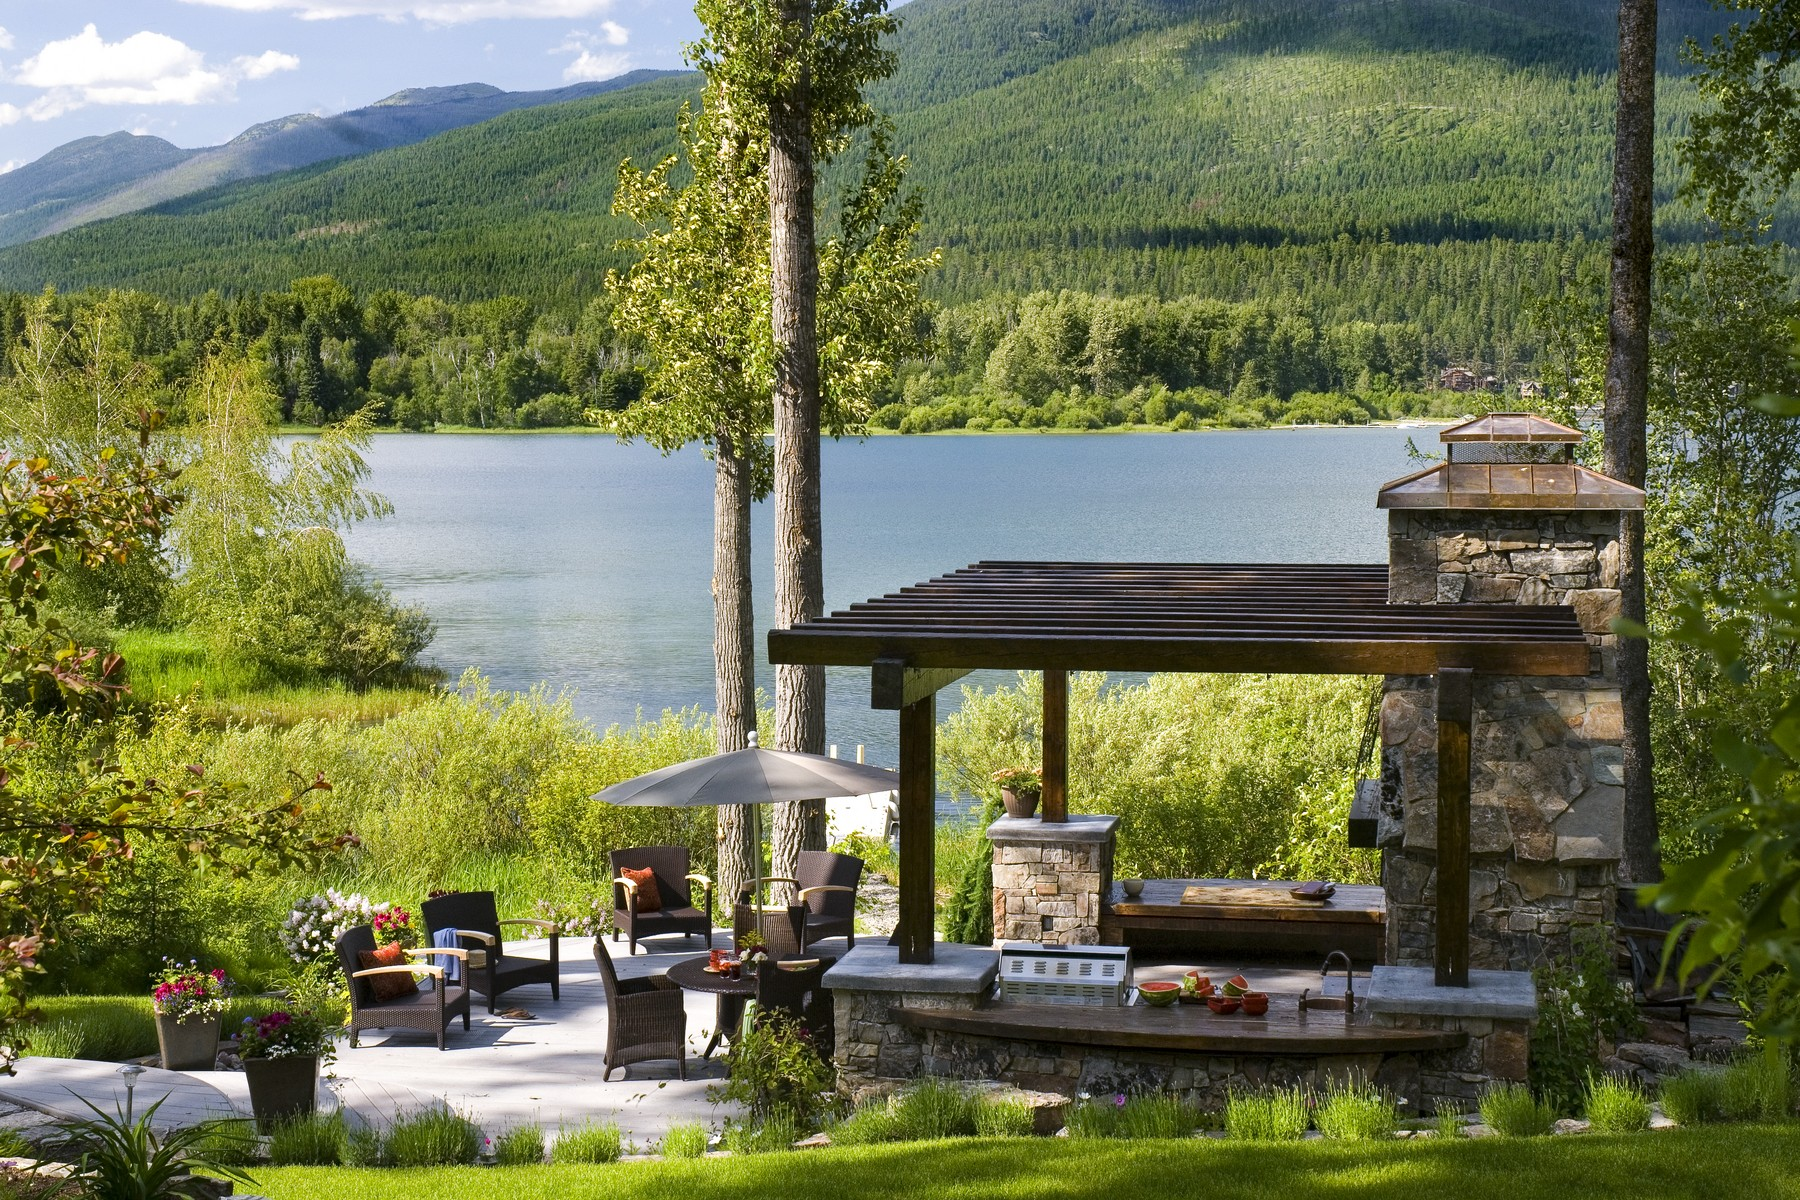 단독 가정 주택 용 매매 에 Spectacular Home on Whitefish Lakes Lazy Bay 669 Delrey Rd Whitefish, 몬타나, 59937 미국